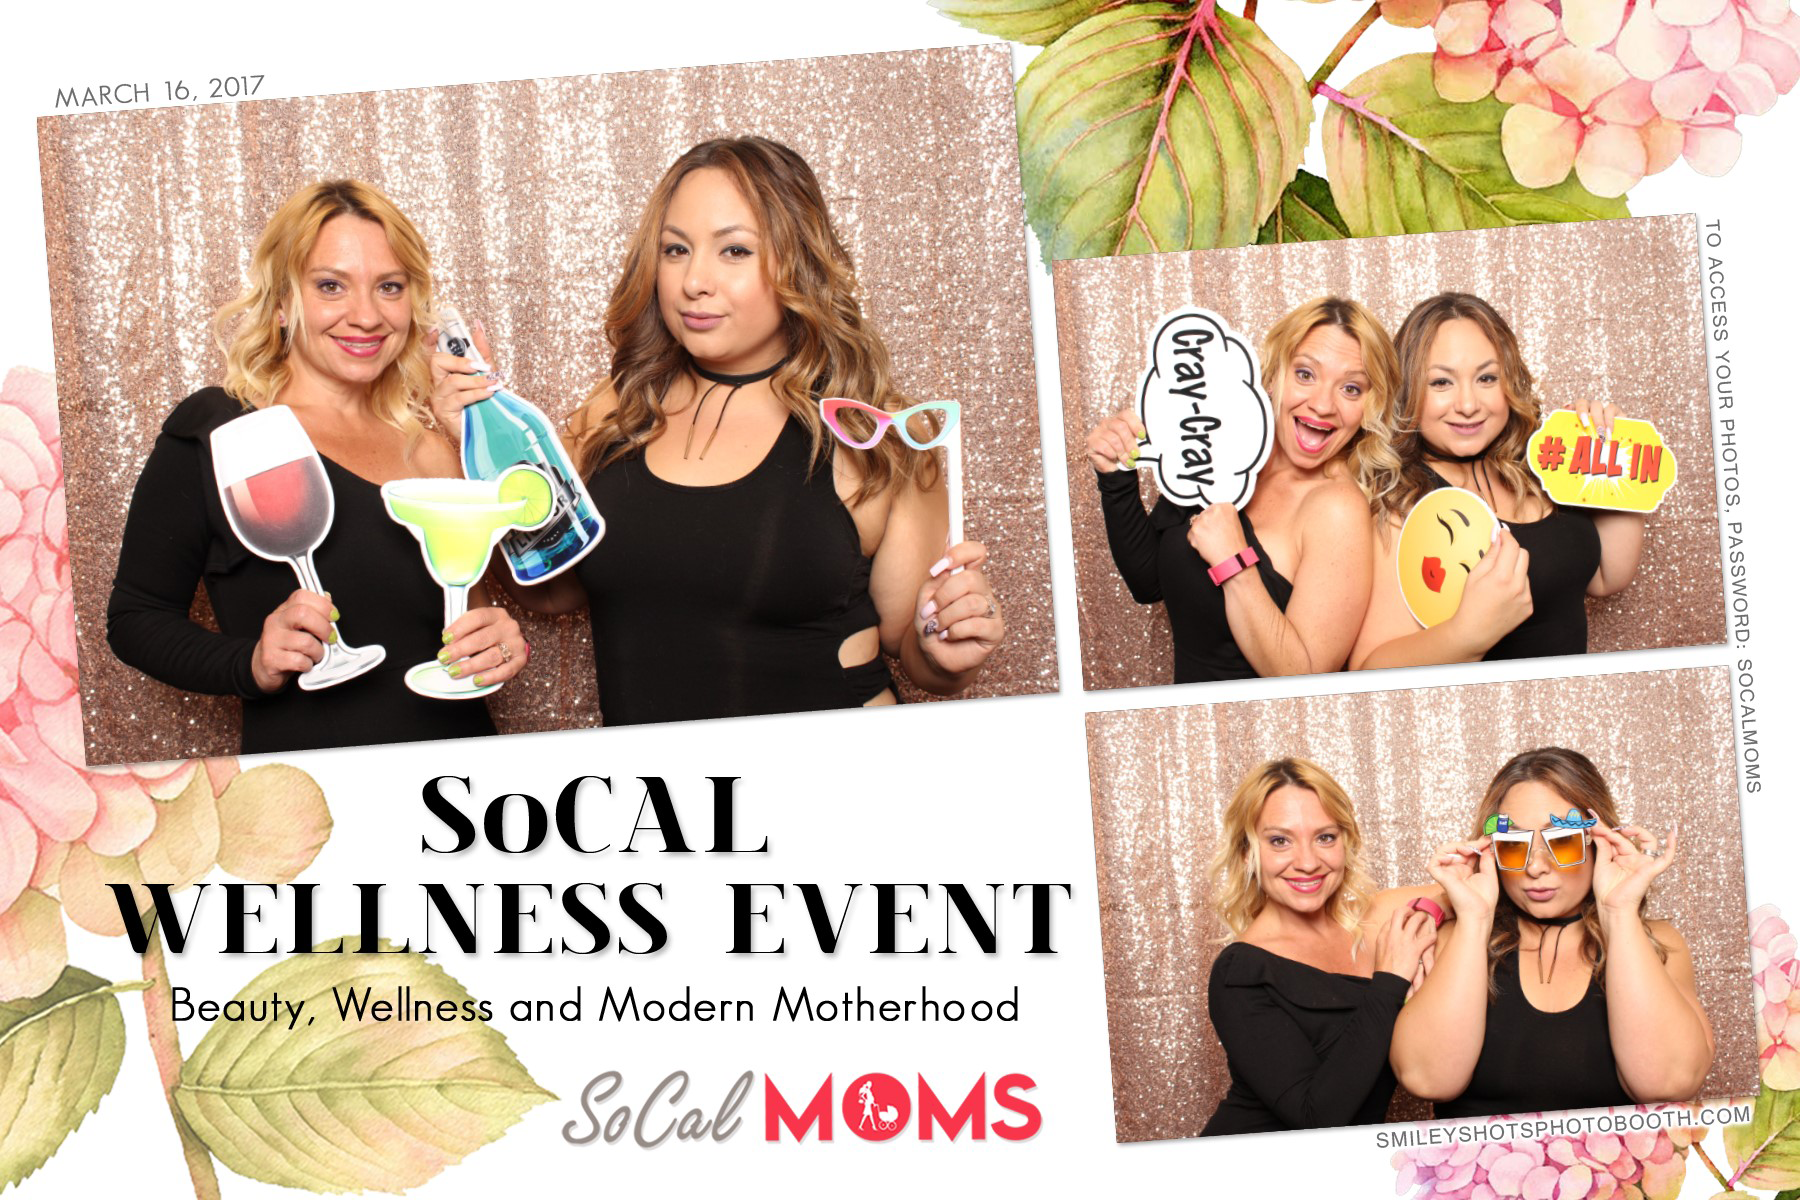 Socal Wellness Event Socal Moms Smiley Shots Photo Booth Photobooth (14).png